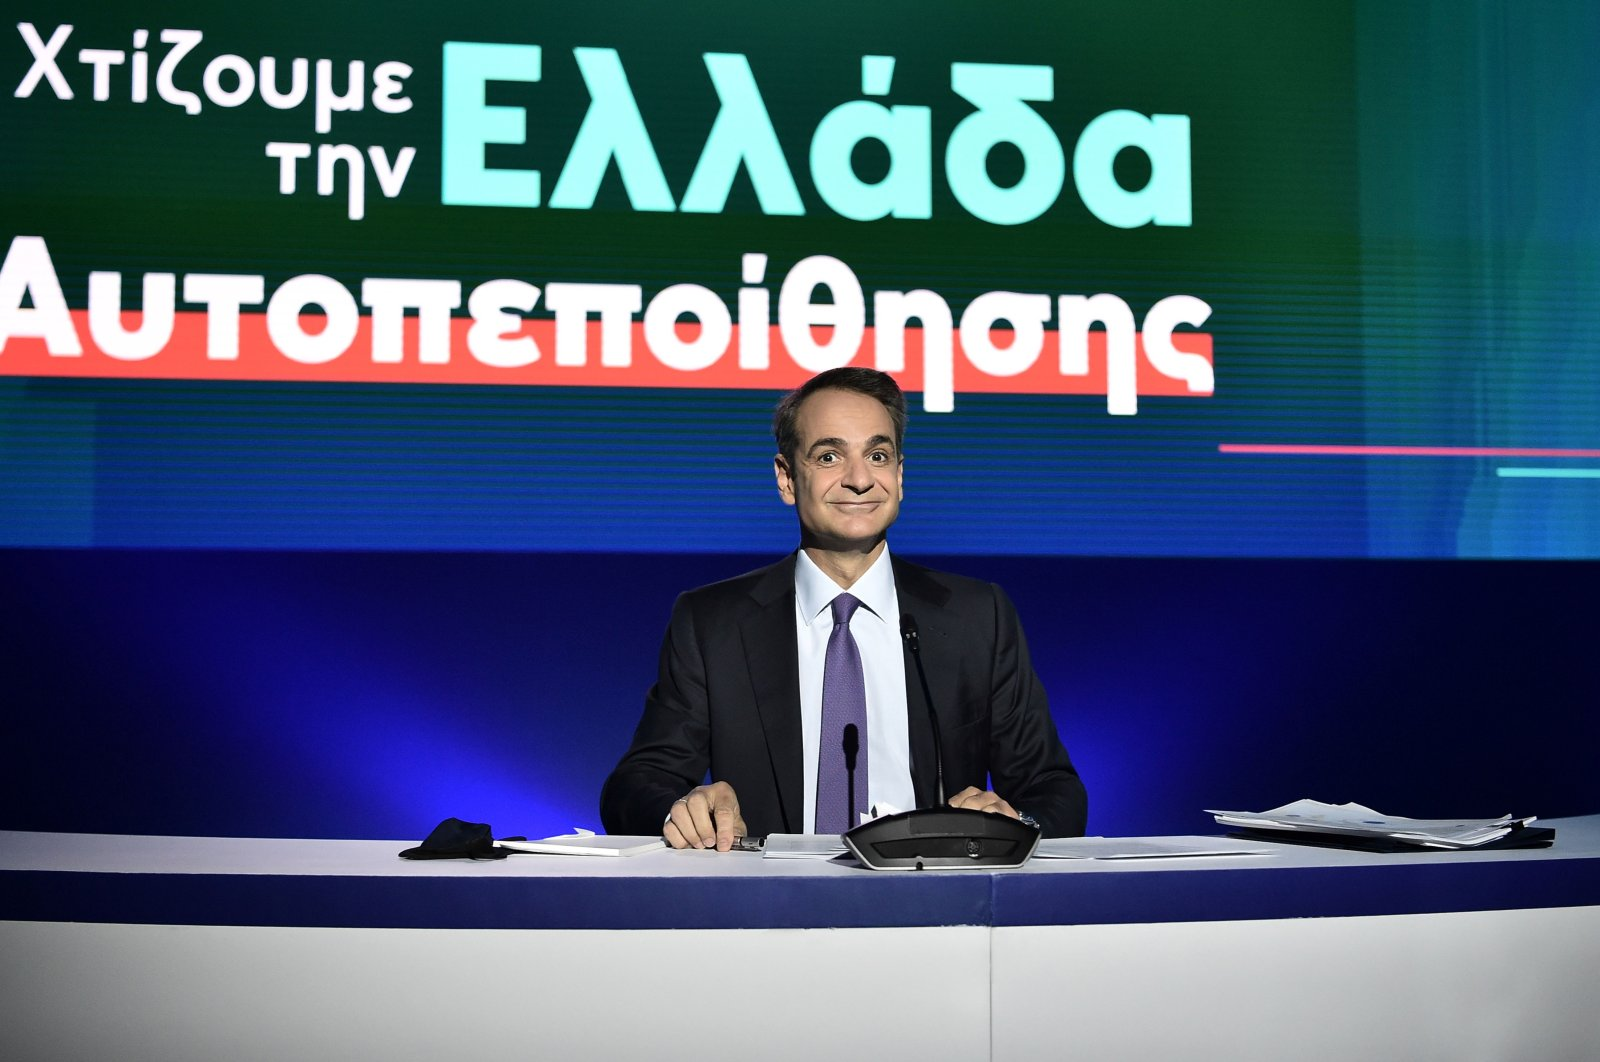 Greek Prime Minister Kyriakos Mitsotakis speaks during a news conference on state defense and economy program at the Thessaloniki Helexpo Forum on Sept. 13, 2020. (AFP Photo)